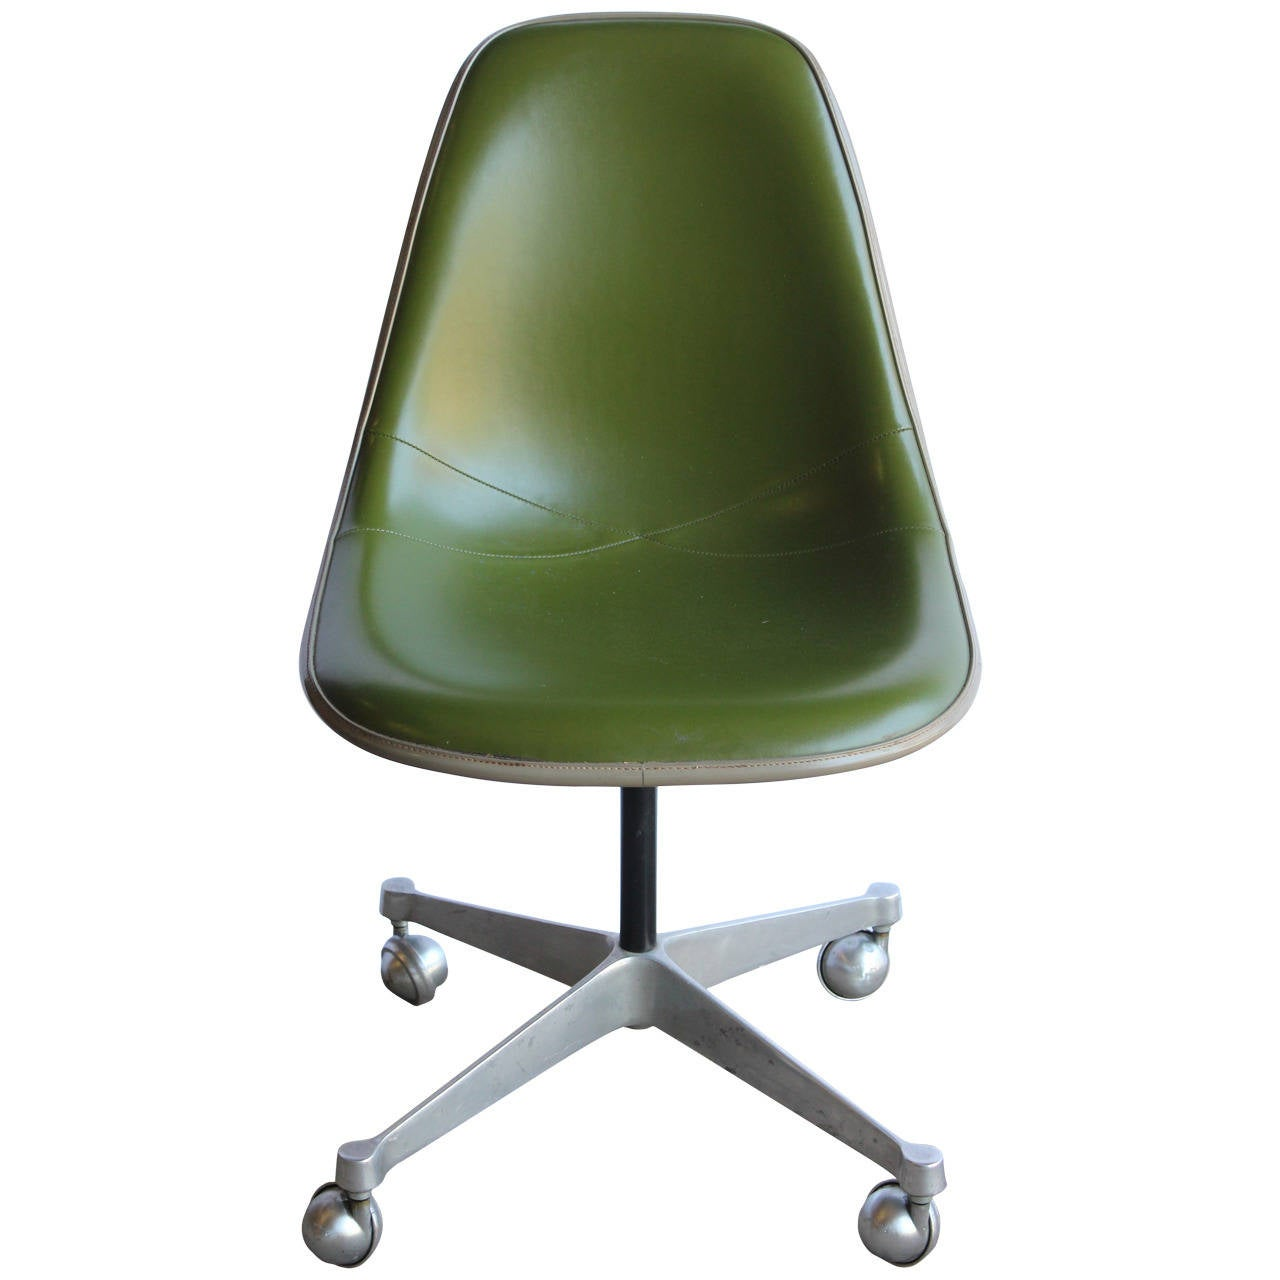 1960s Charles Eames Desk Chair for Herman Miller For Sale  sc 1 st  1stDibs & 1960s Charles Eames Desk Chair for Herman Miller For Sale at 1stdibs